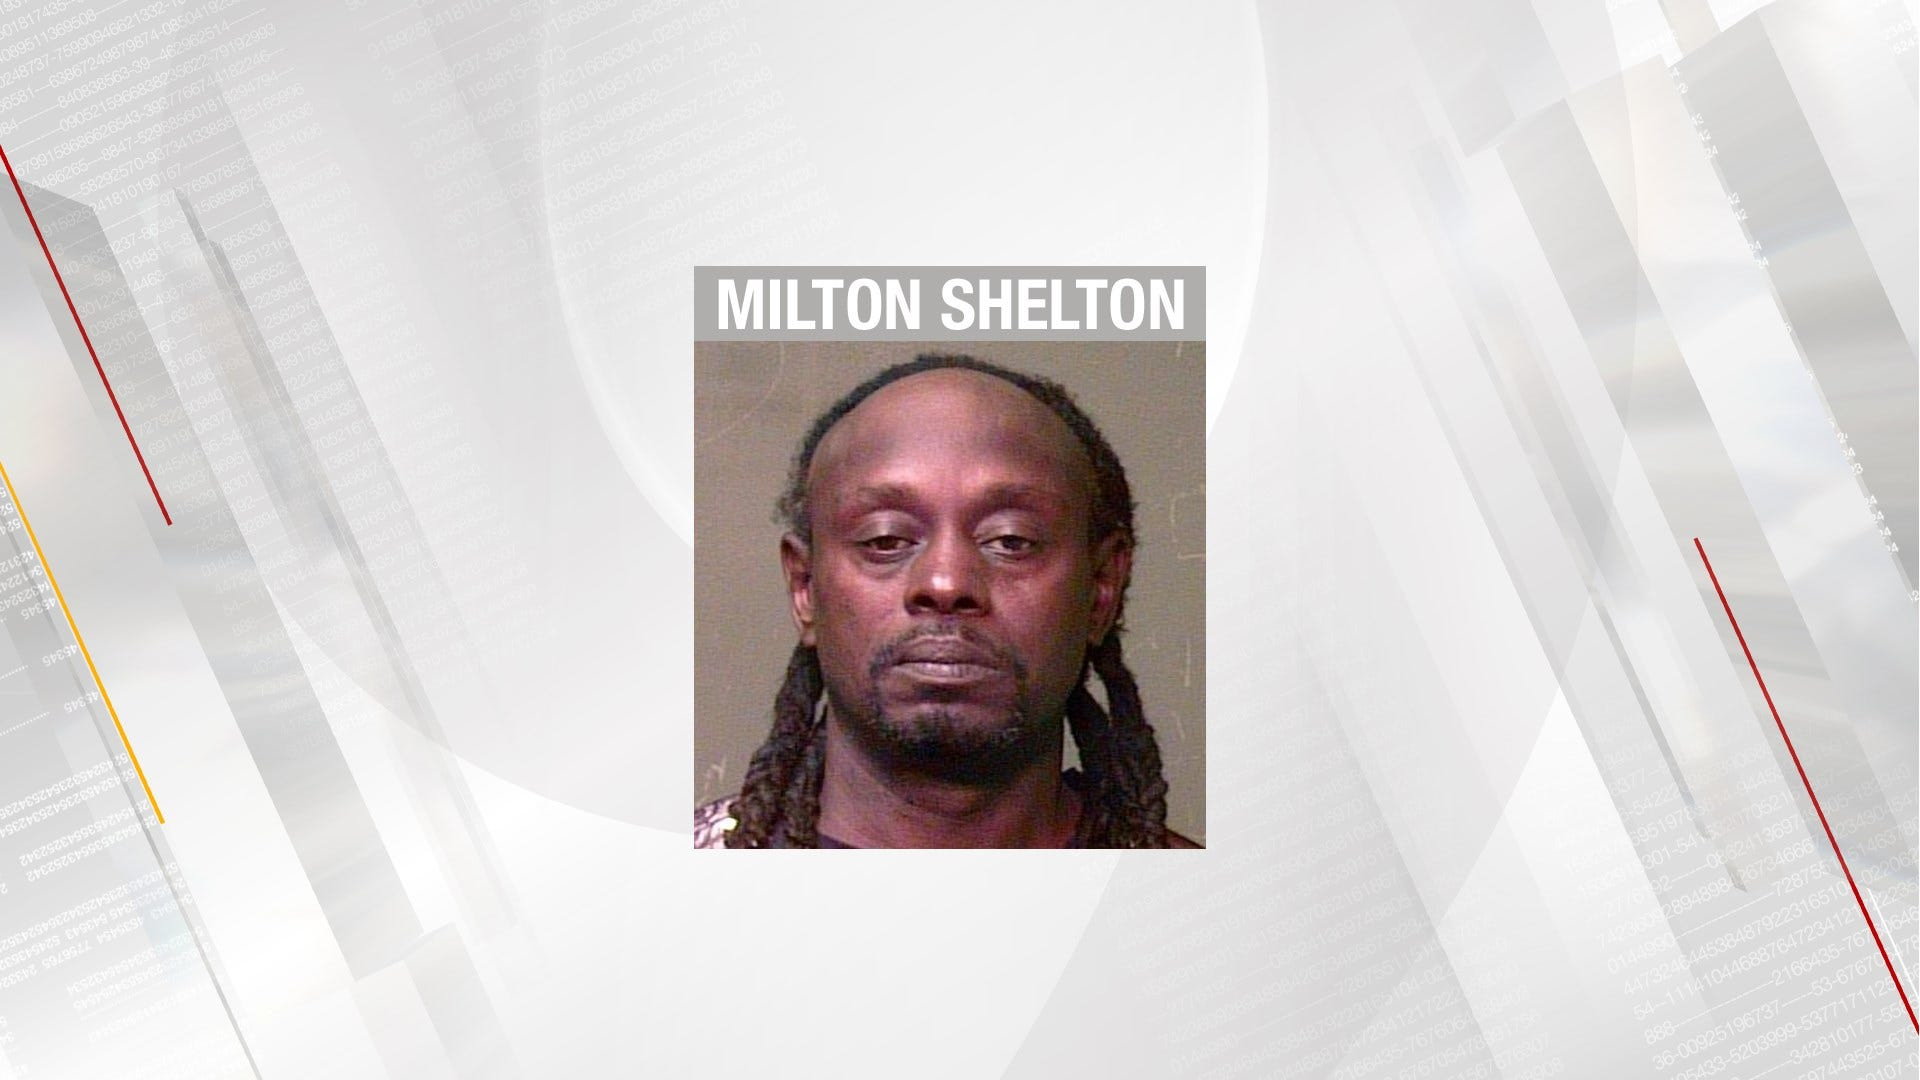 OKC Pimp Found Guilty Of Human Trafficking